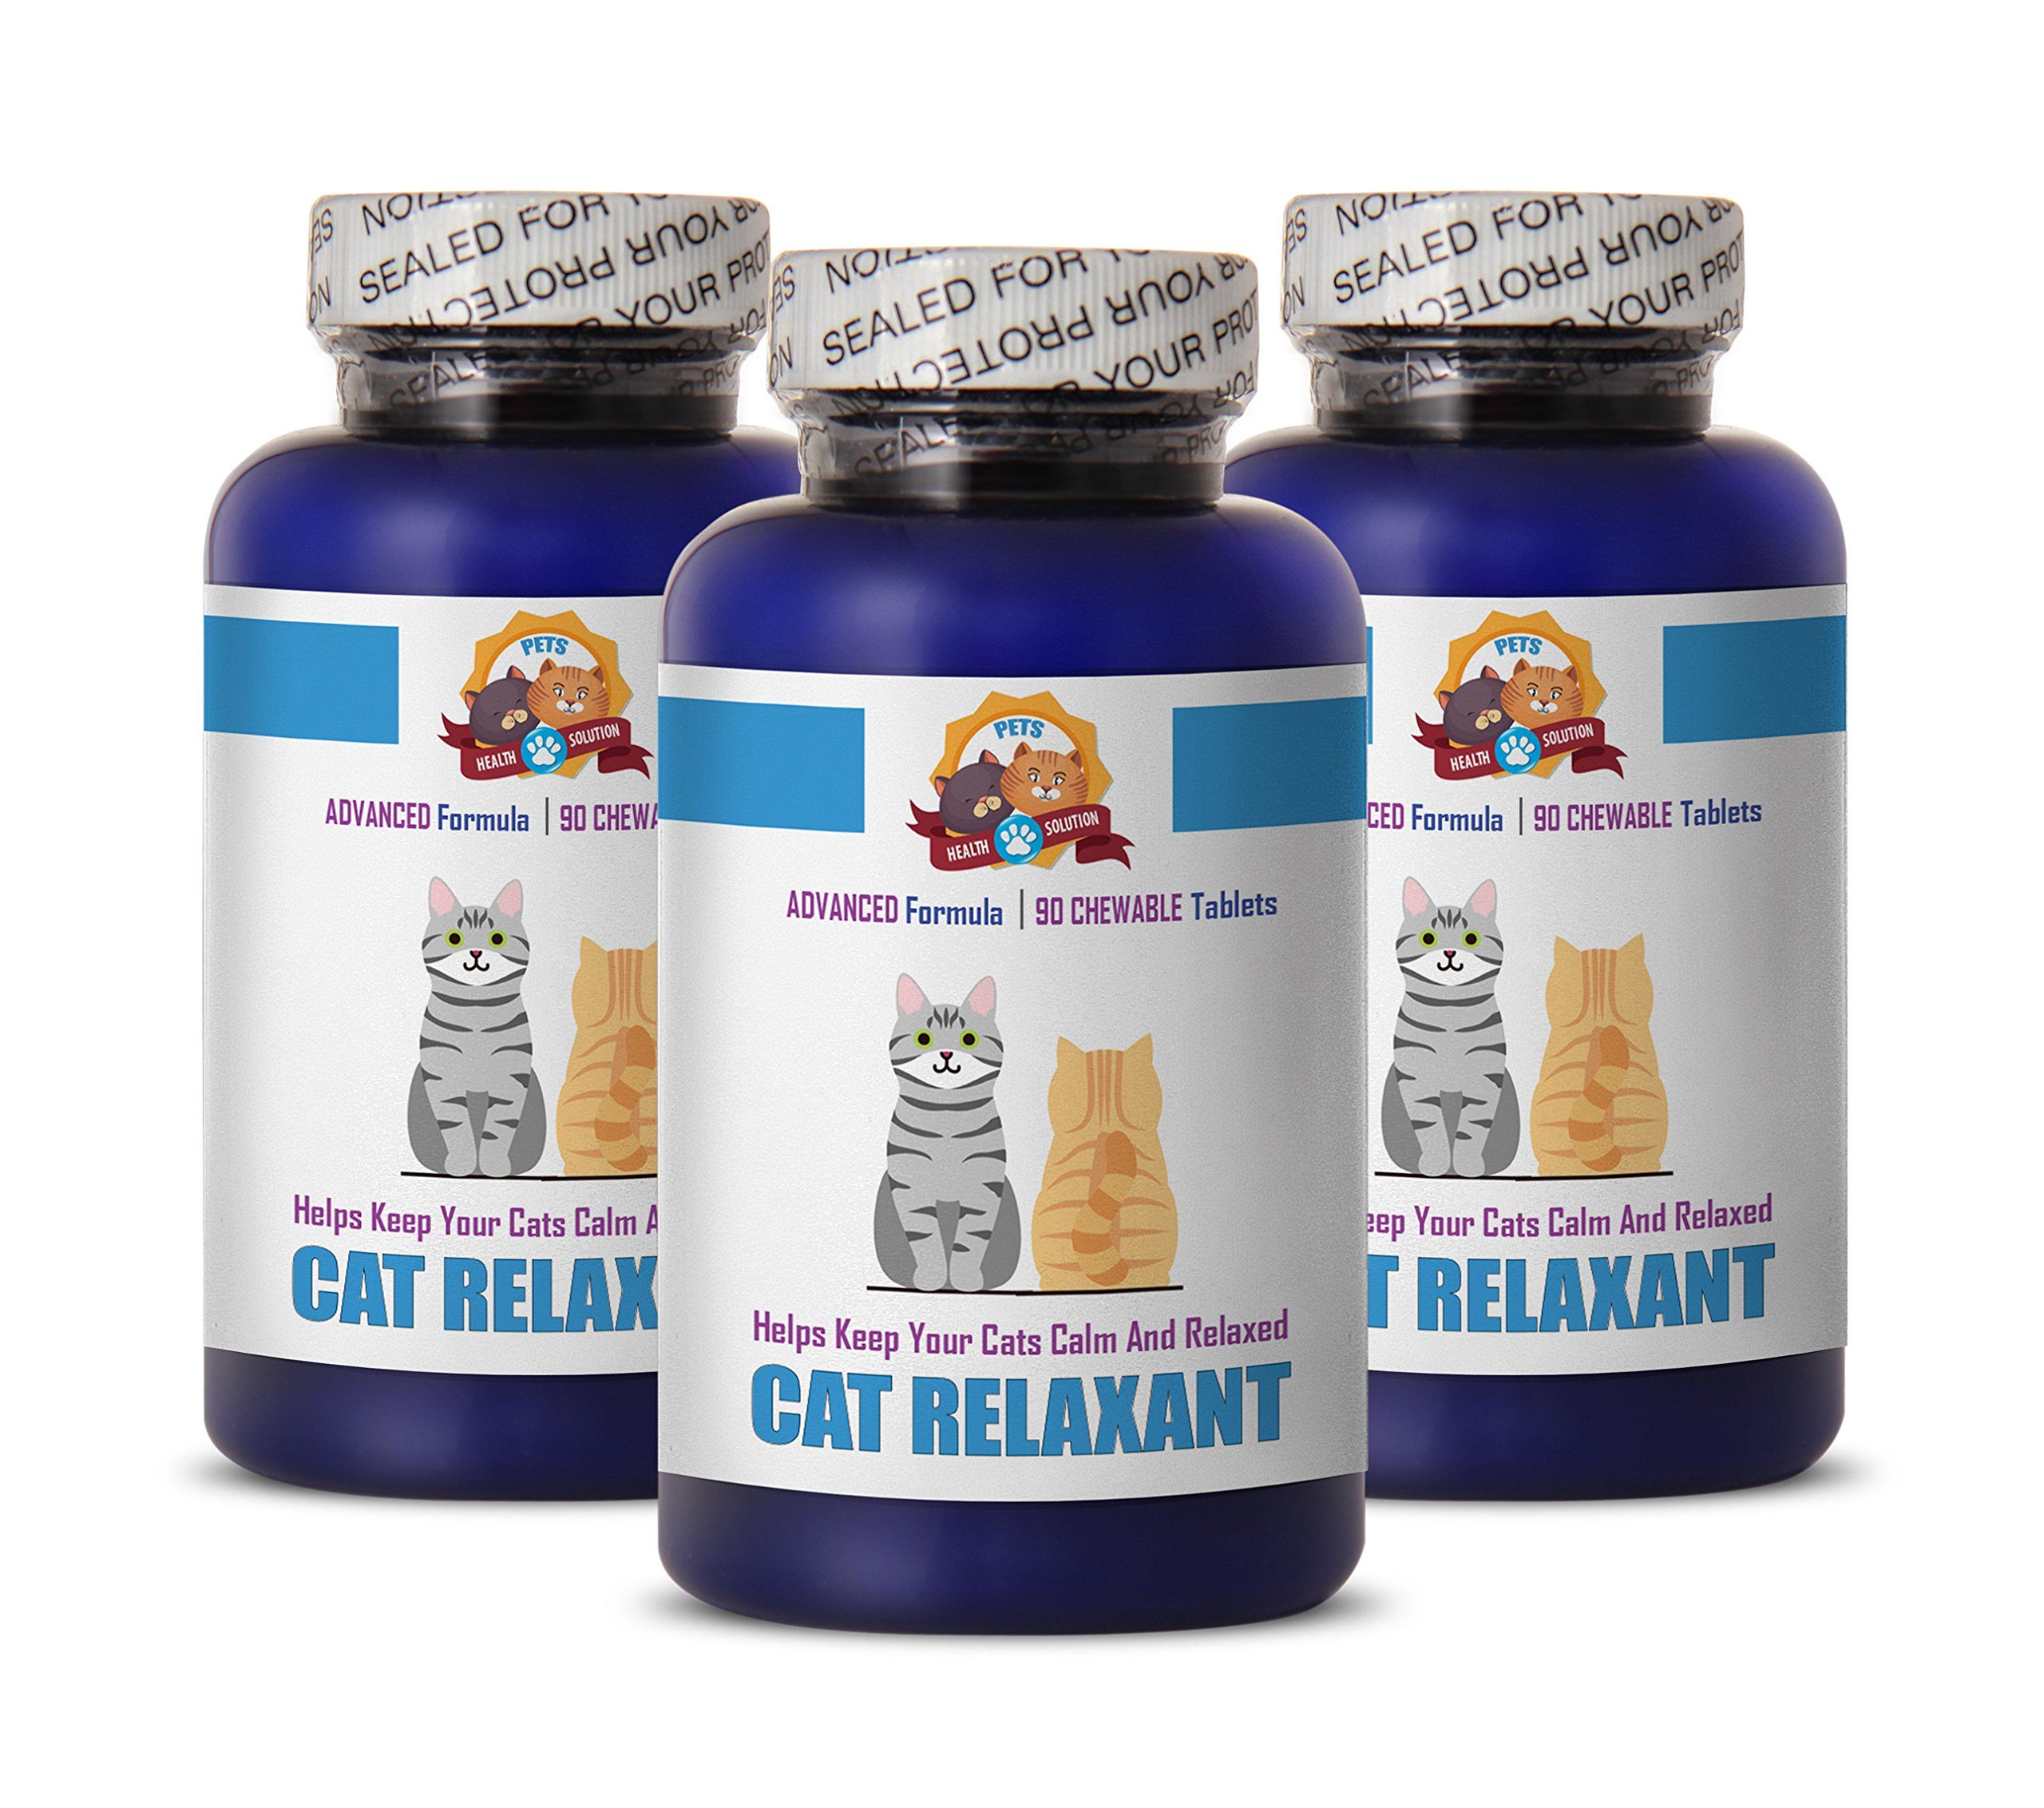 PETS HEALTH SOLUTION cat calming supplement - RELAXANT FOR CATS - HELPS KEEP CALM - ANXIETY RELIEF - TREATS - cat calmer for travel - 270 Treats (3 Bottle) by PETS HEALTH SOLUTION